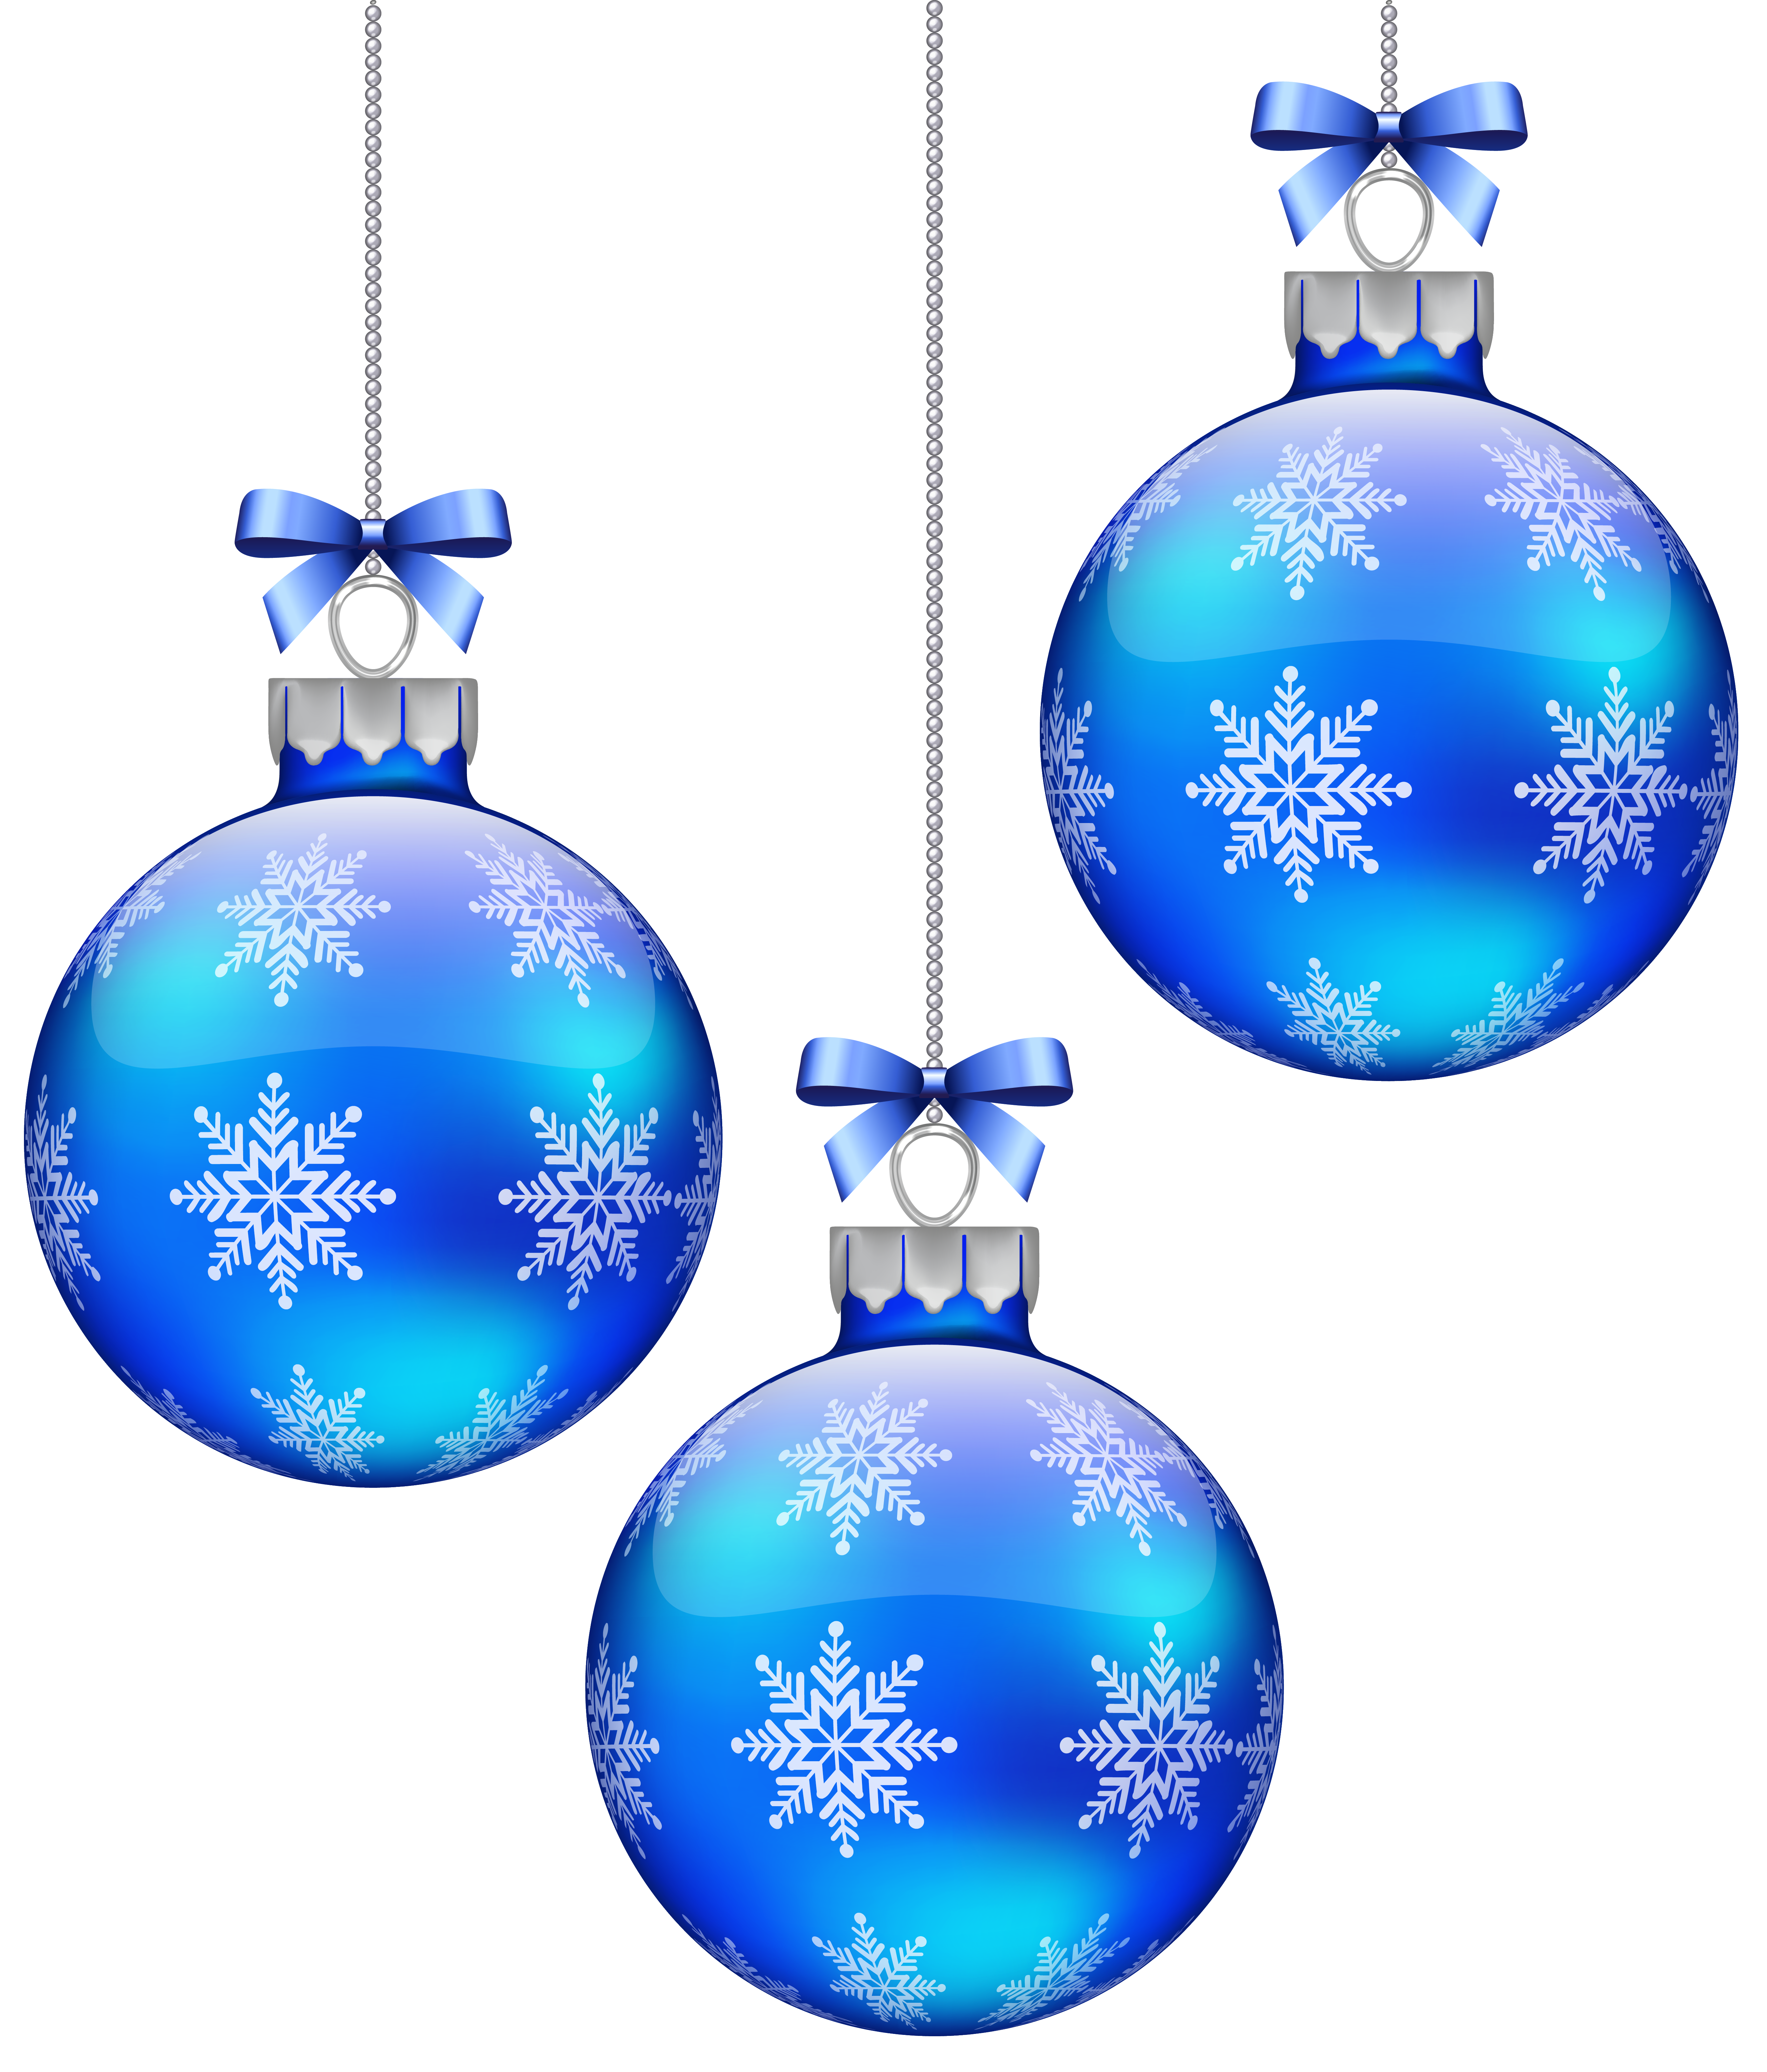 blue christmas decorations clipart - Clipground